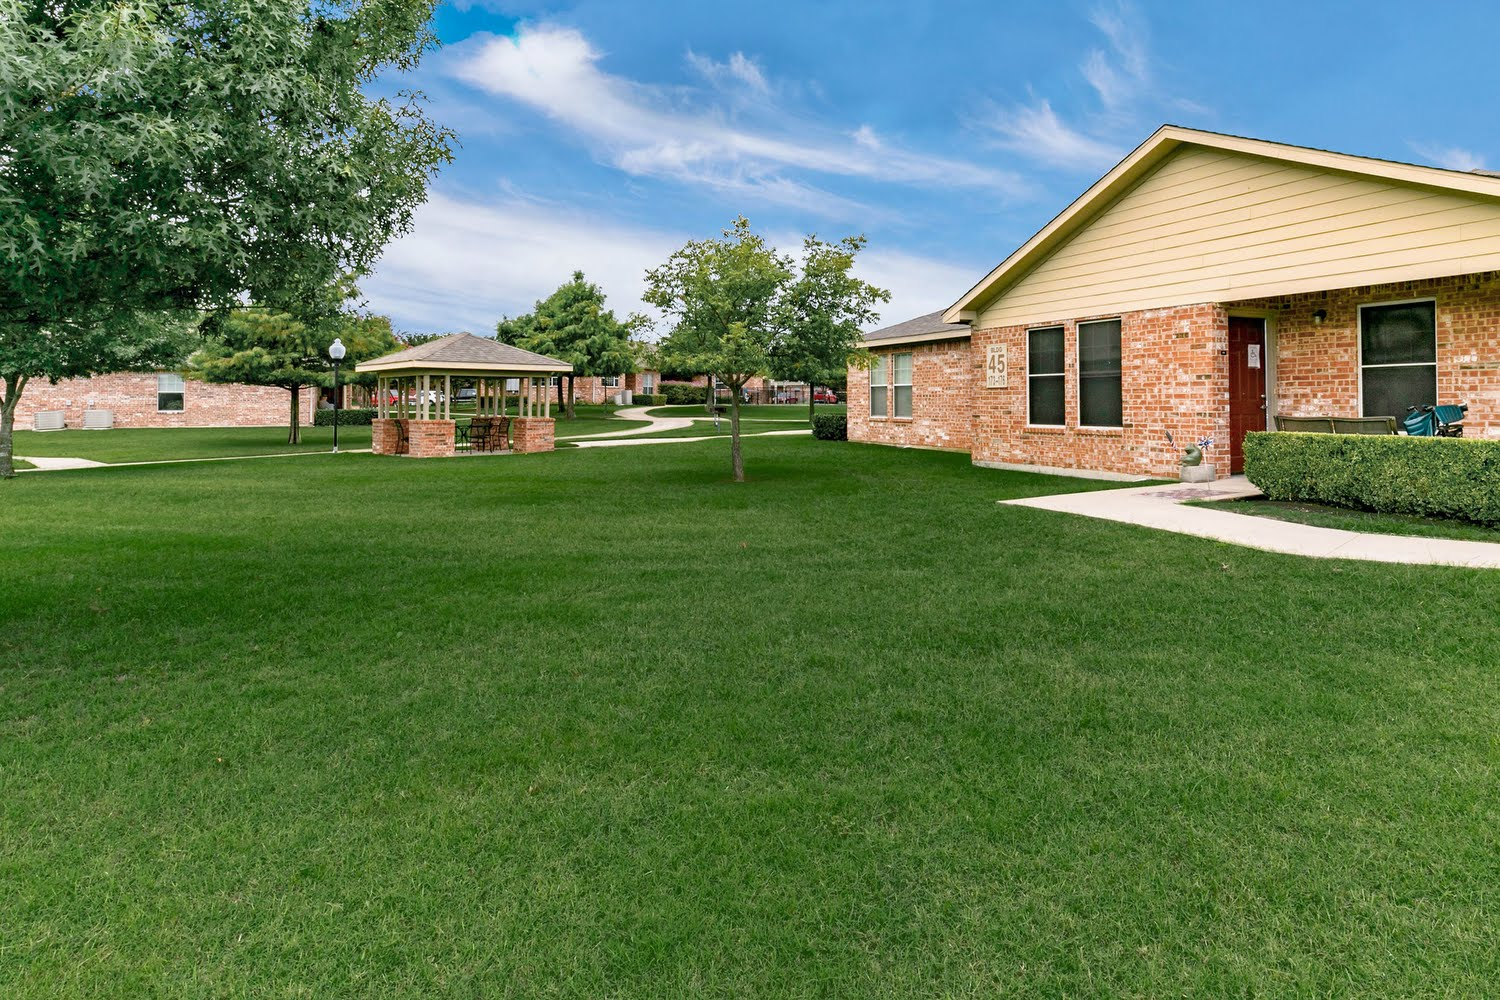 terrel senior singles Explore senior housing options in terrell, tx, and nearby cities  these communities range from apartment complexesor condos, to single-family homes in a gated .